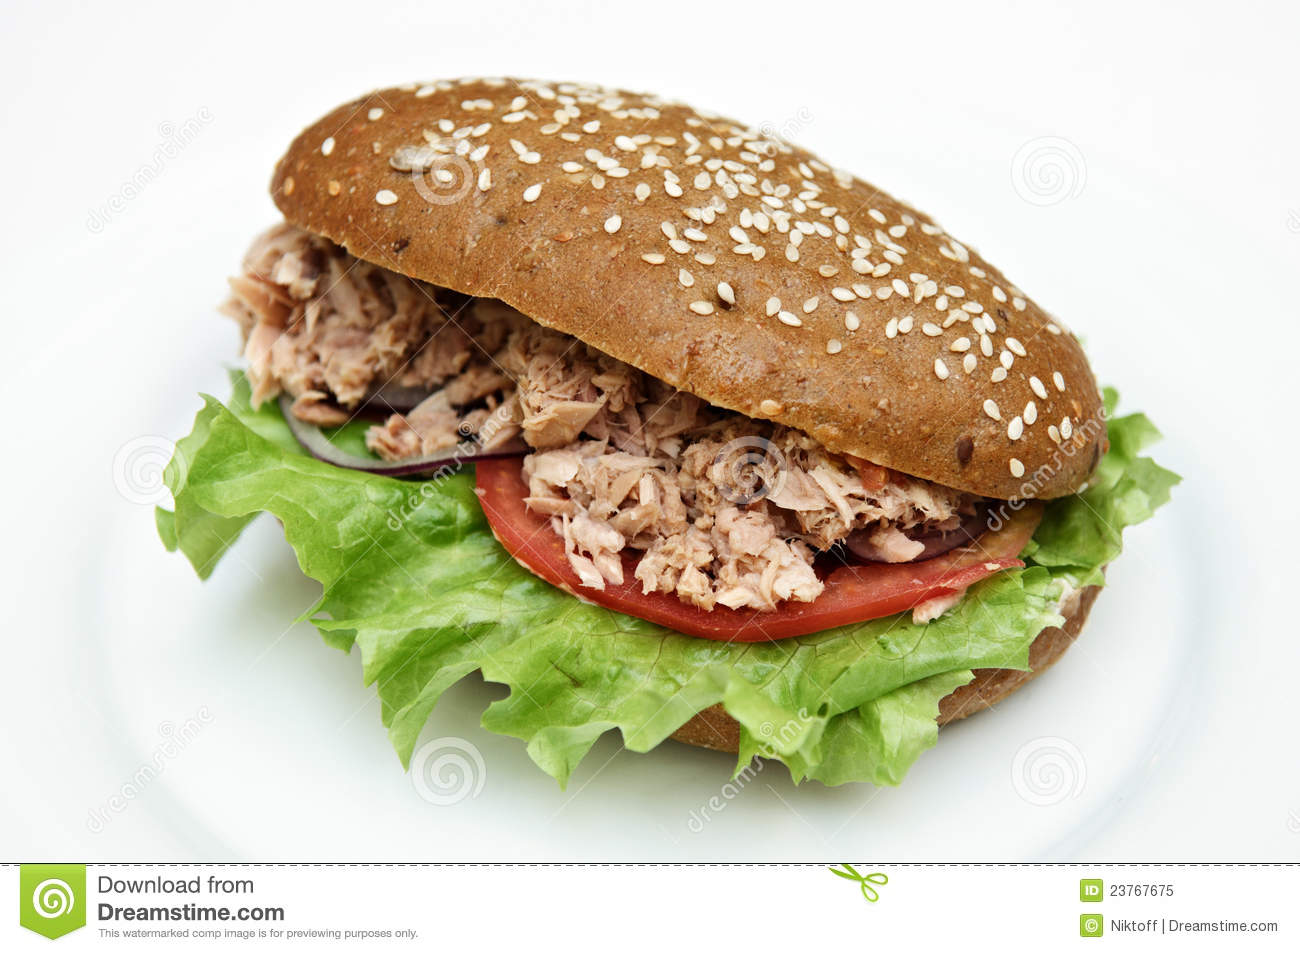 Tuna Salad Sandwich Royalty Free Stock Photo - Image: 23767675